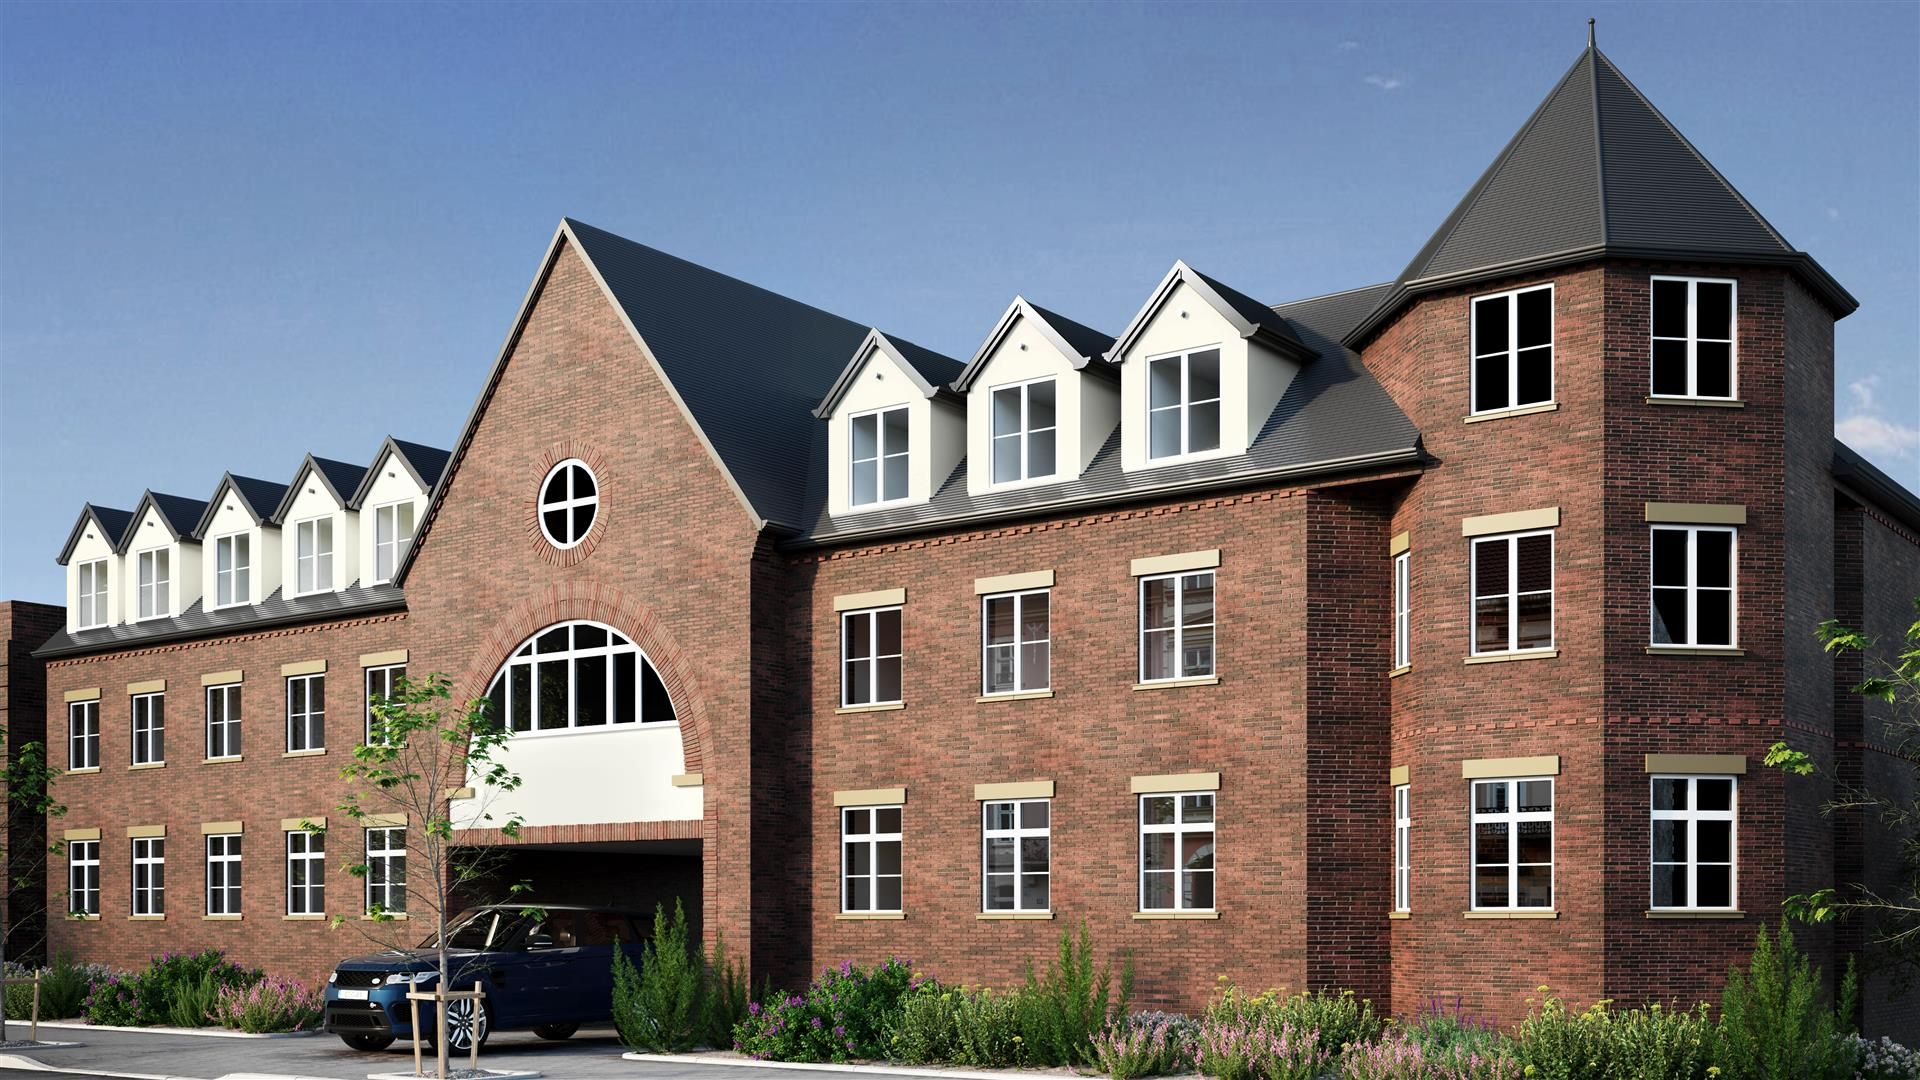 Property photo 1 of 18. CGI Frontage Final.Jpg